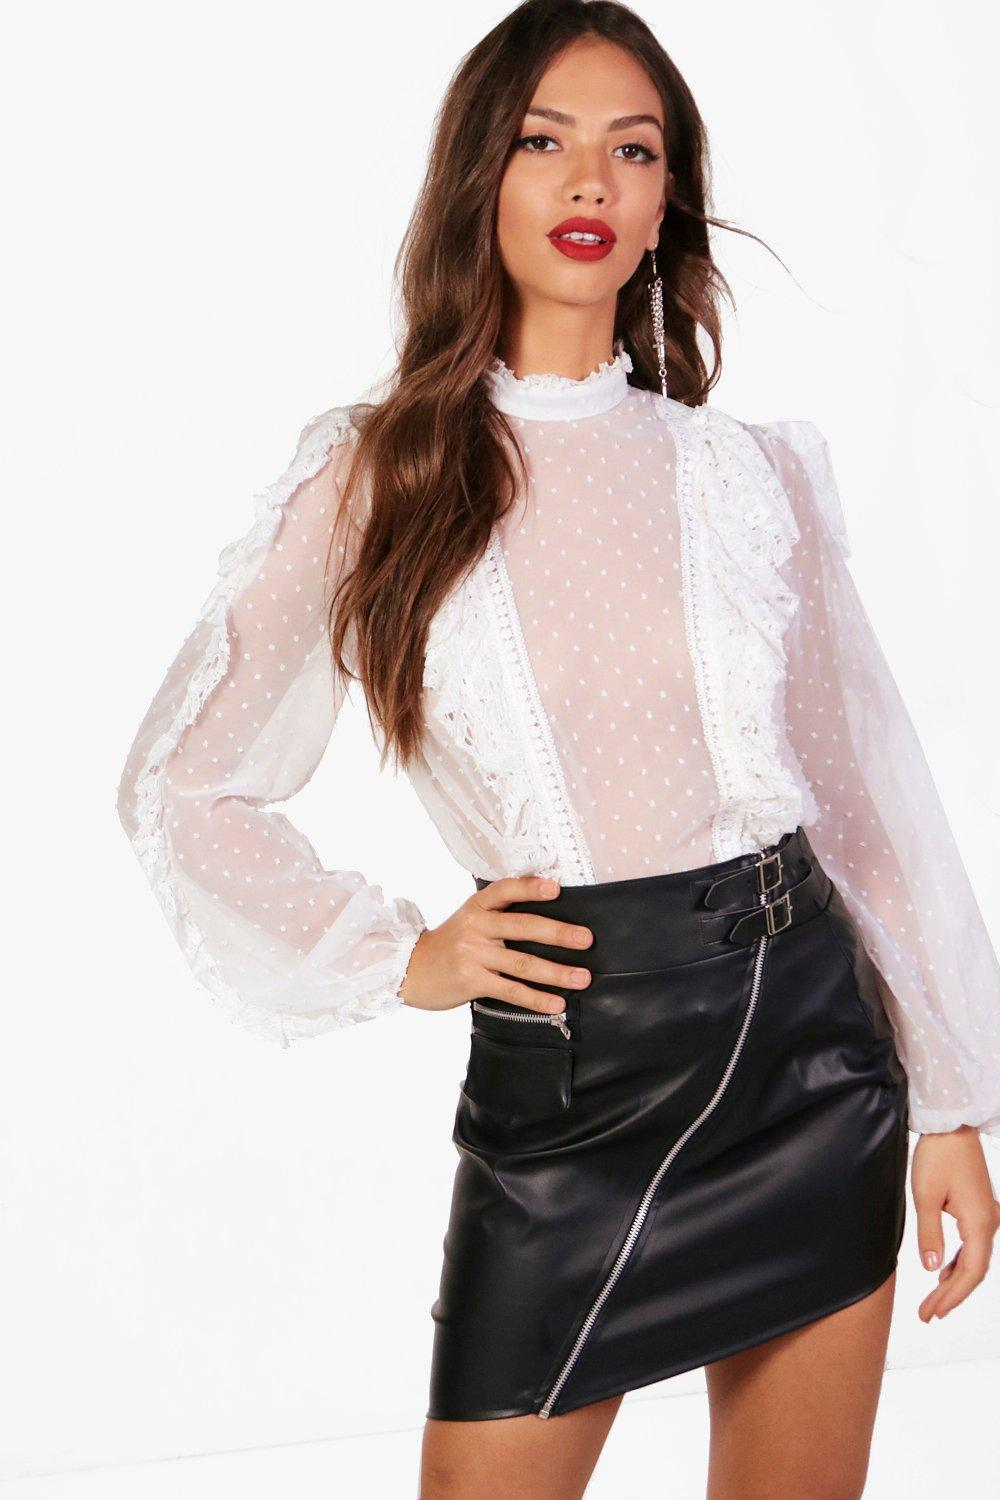 6a5a83f8e37 Boohoo Kyra Spot Mesh Lace Ruffle High Neck Blouse in White - Lyst